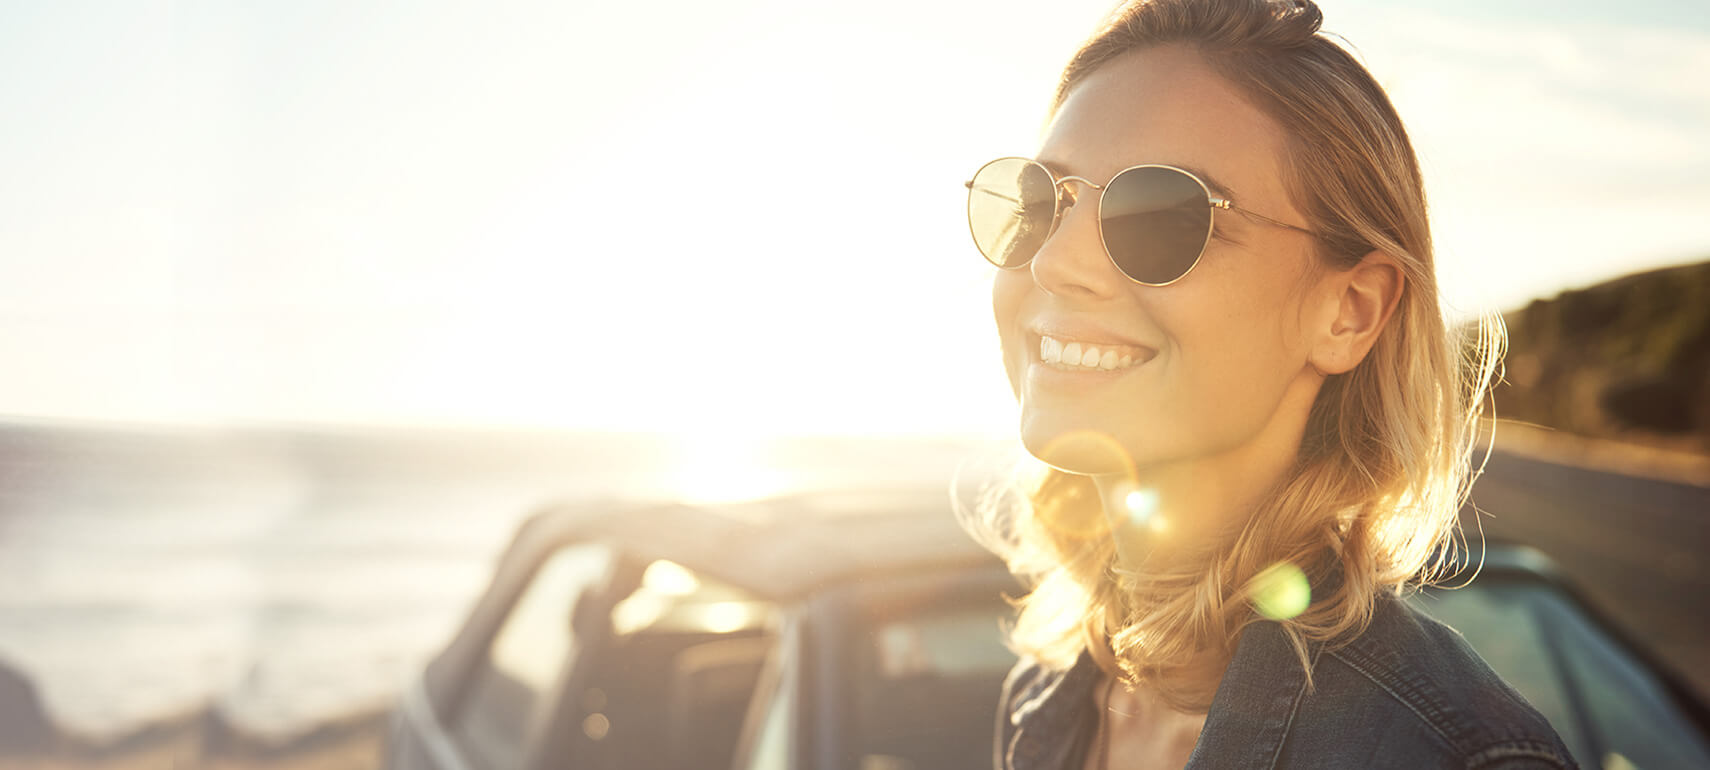 Woman wearing sunglasses smiling while the sun sets in the background